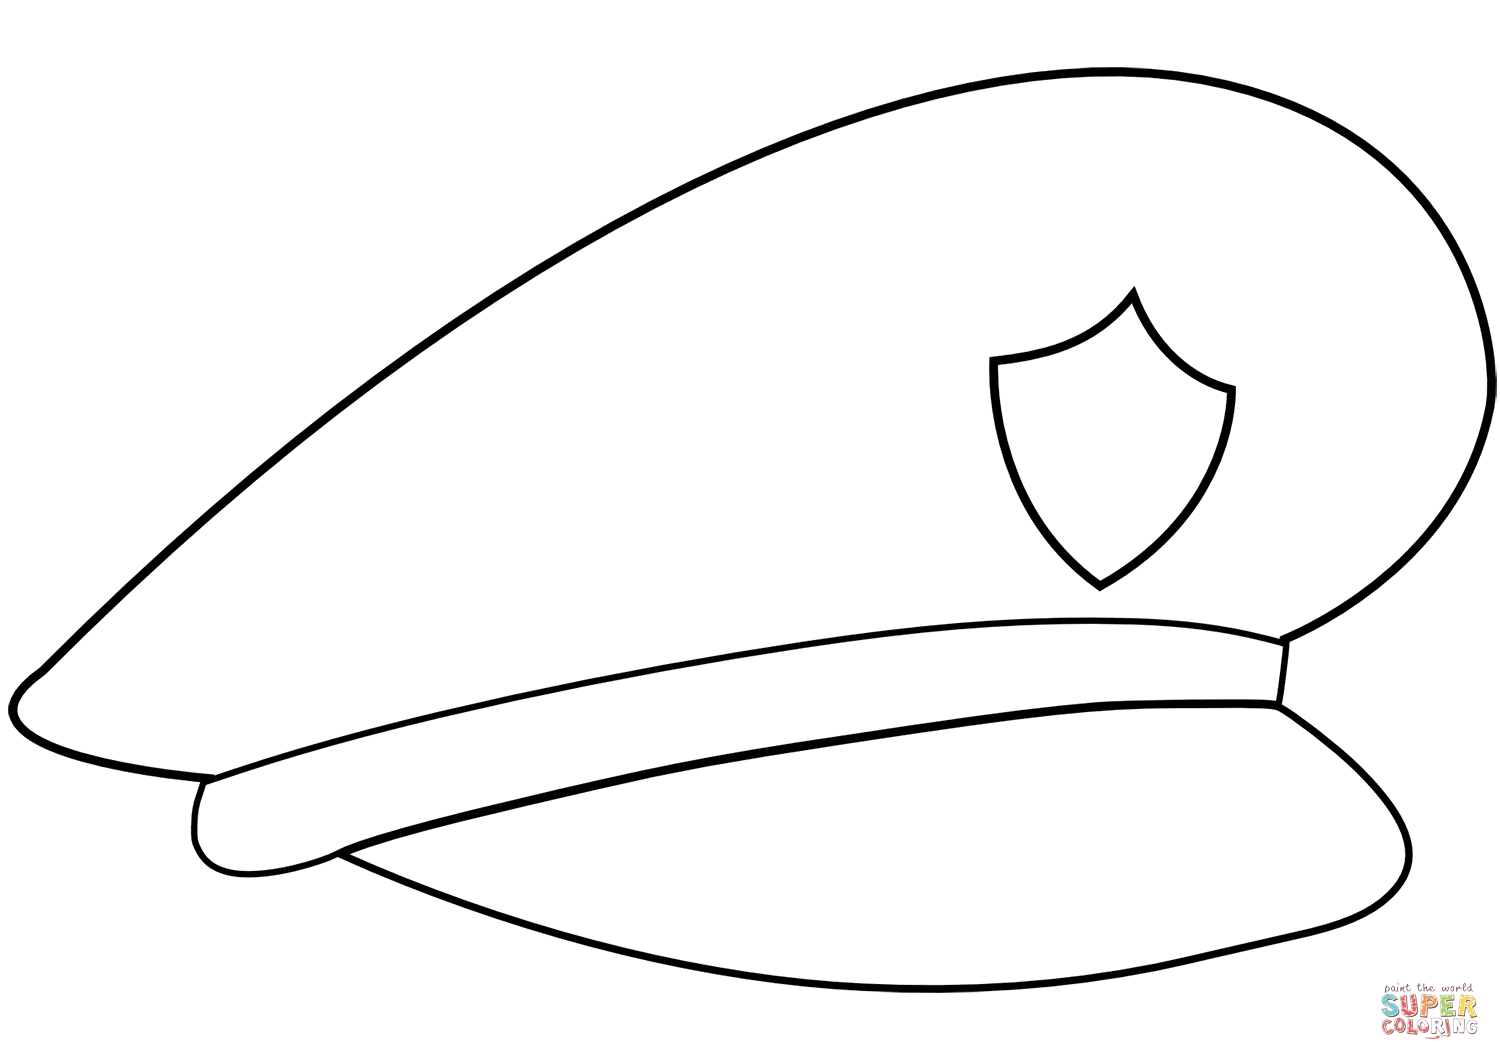 Police Hat Coloring Page   Free Printable Coloring Pages - Free Printable Police Hat